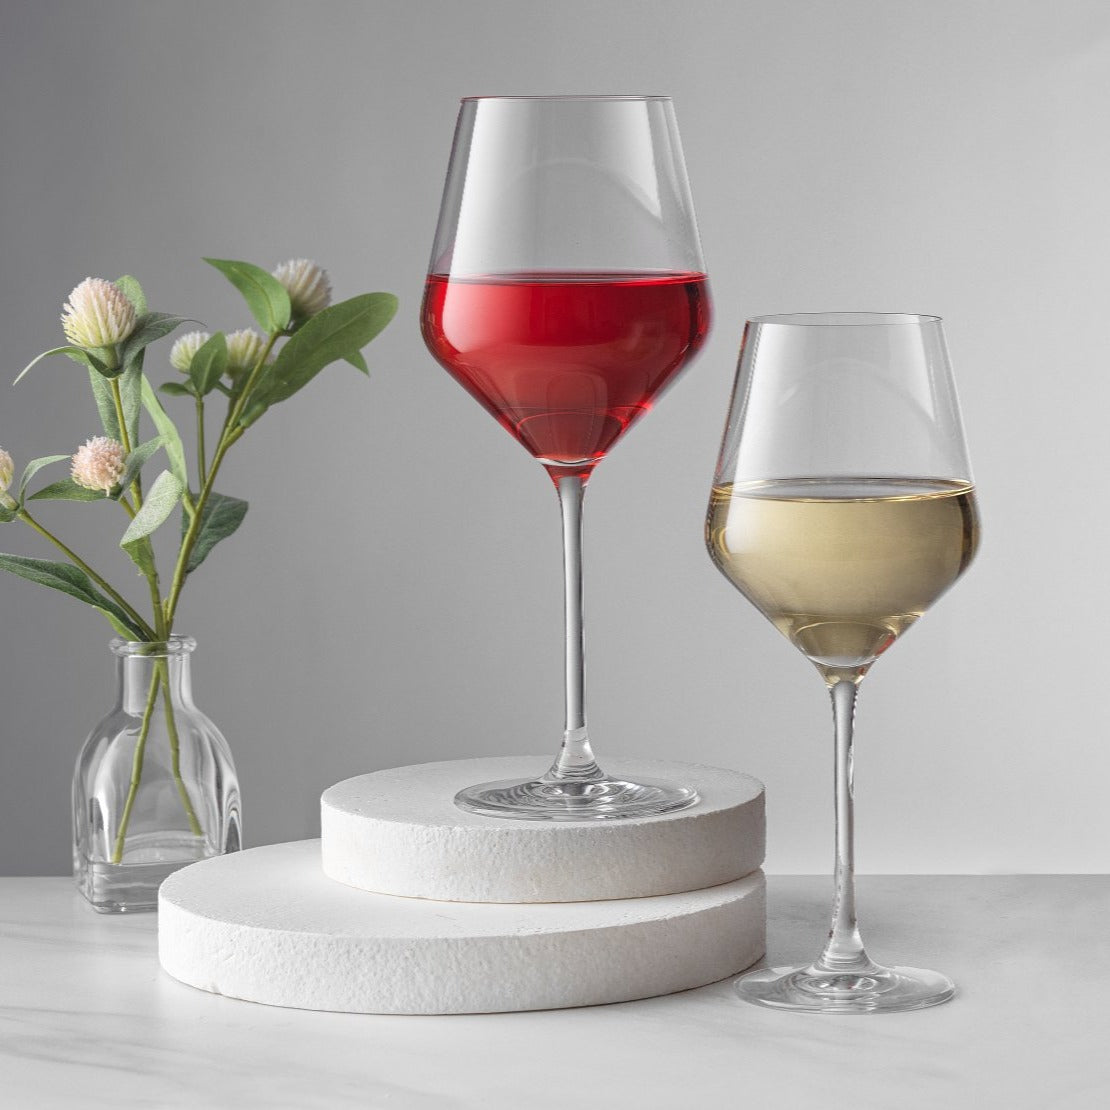 Layla White and Red Wine Glasses Set of 8